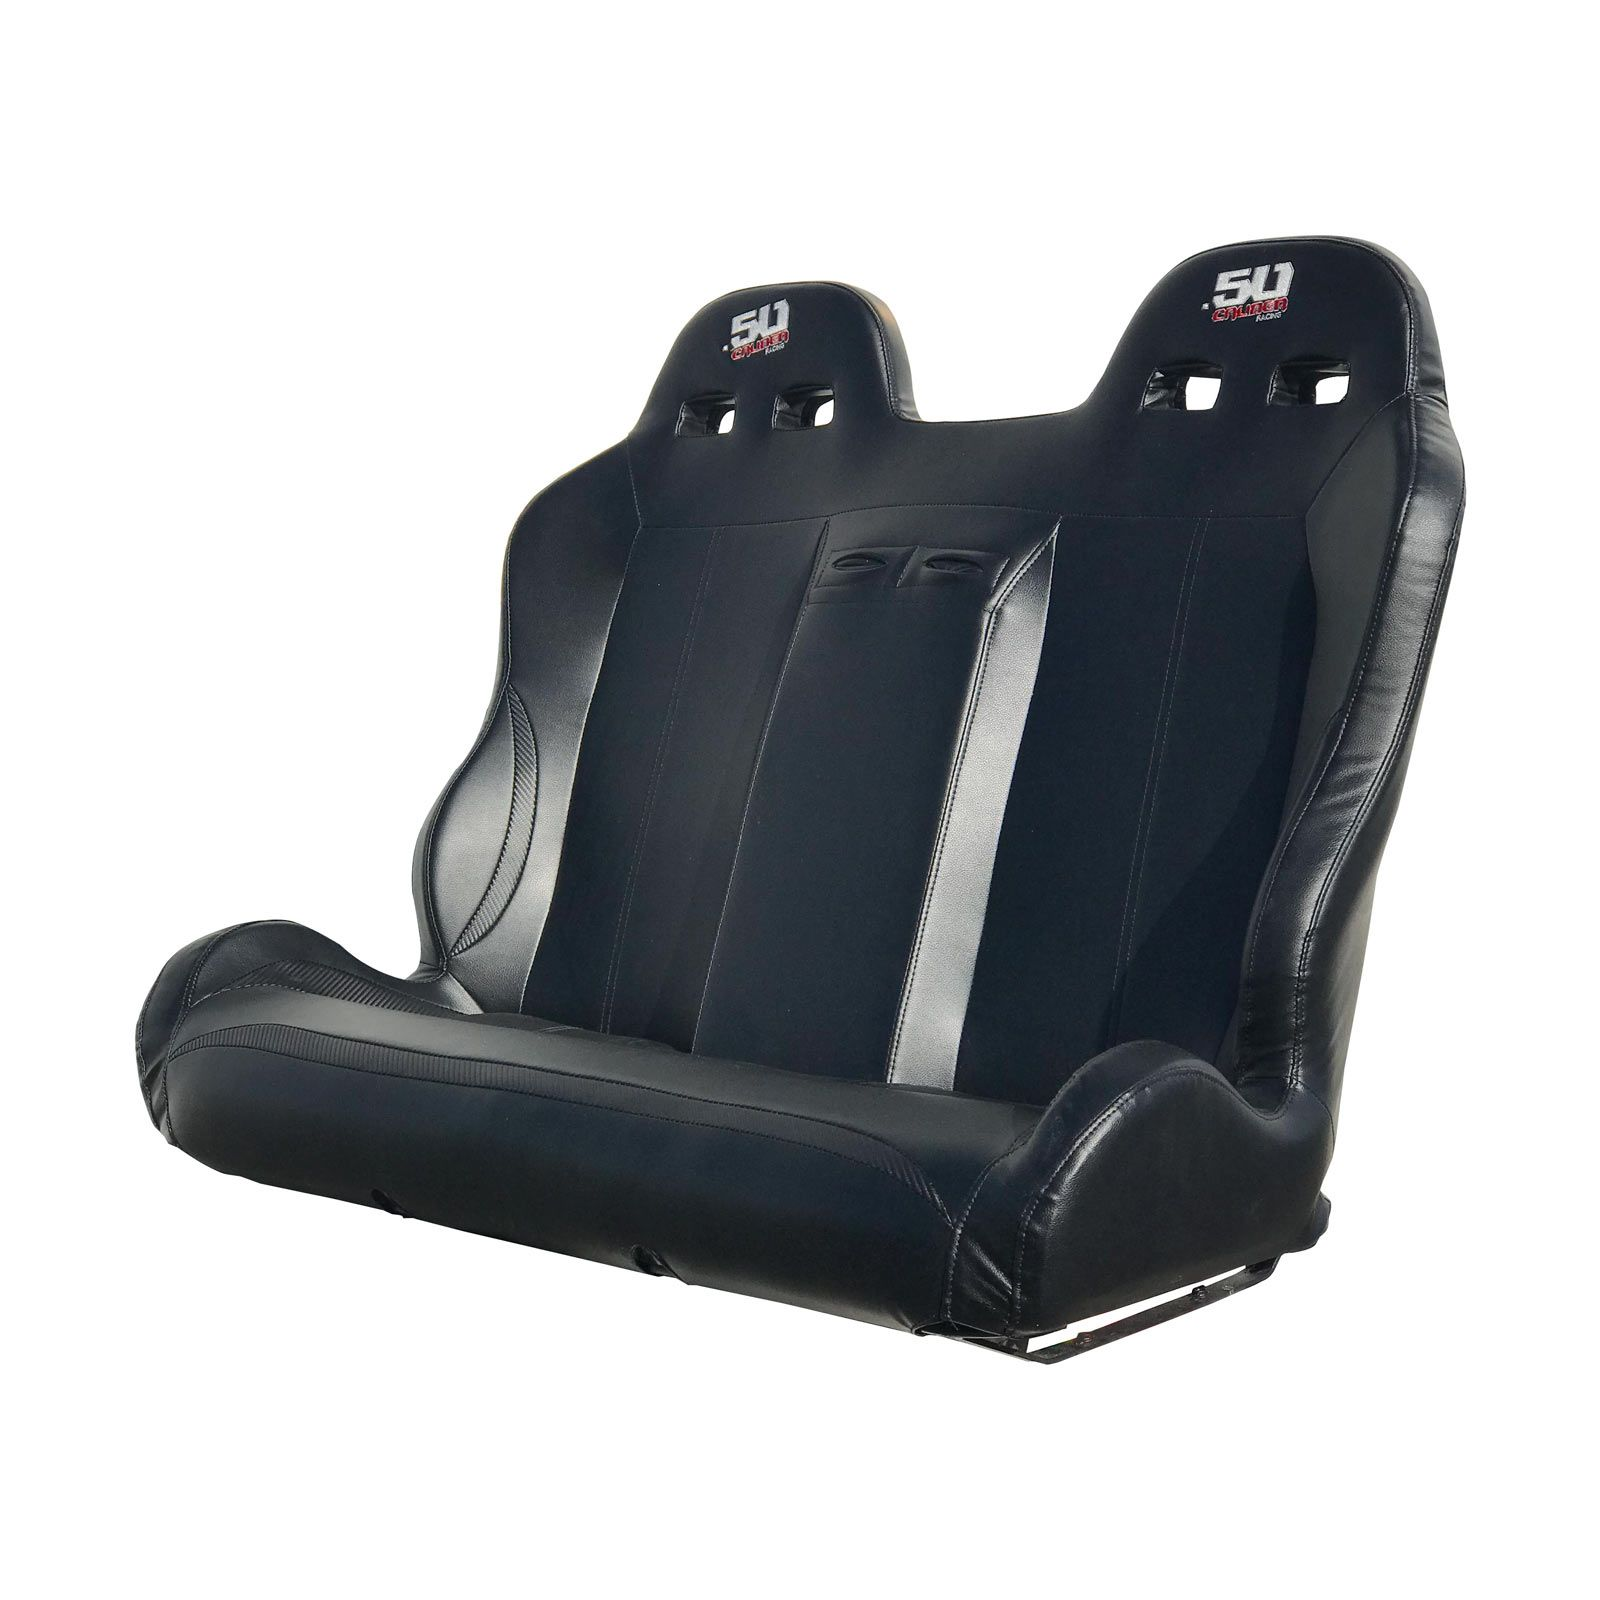 MIDDLE BUMP SEAT FOR 2015 RZR 1000 /& 900 CARBON FIBER W BLACK 4 POINT HARNESS